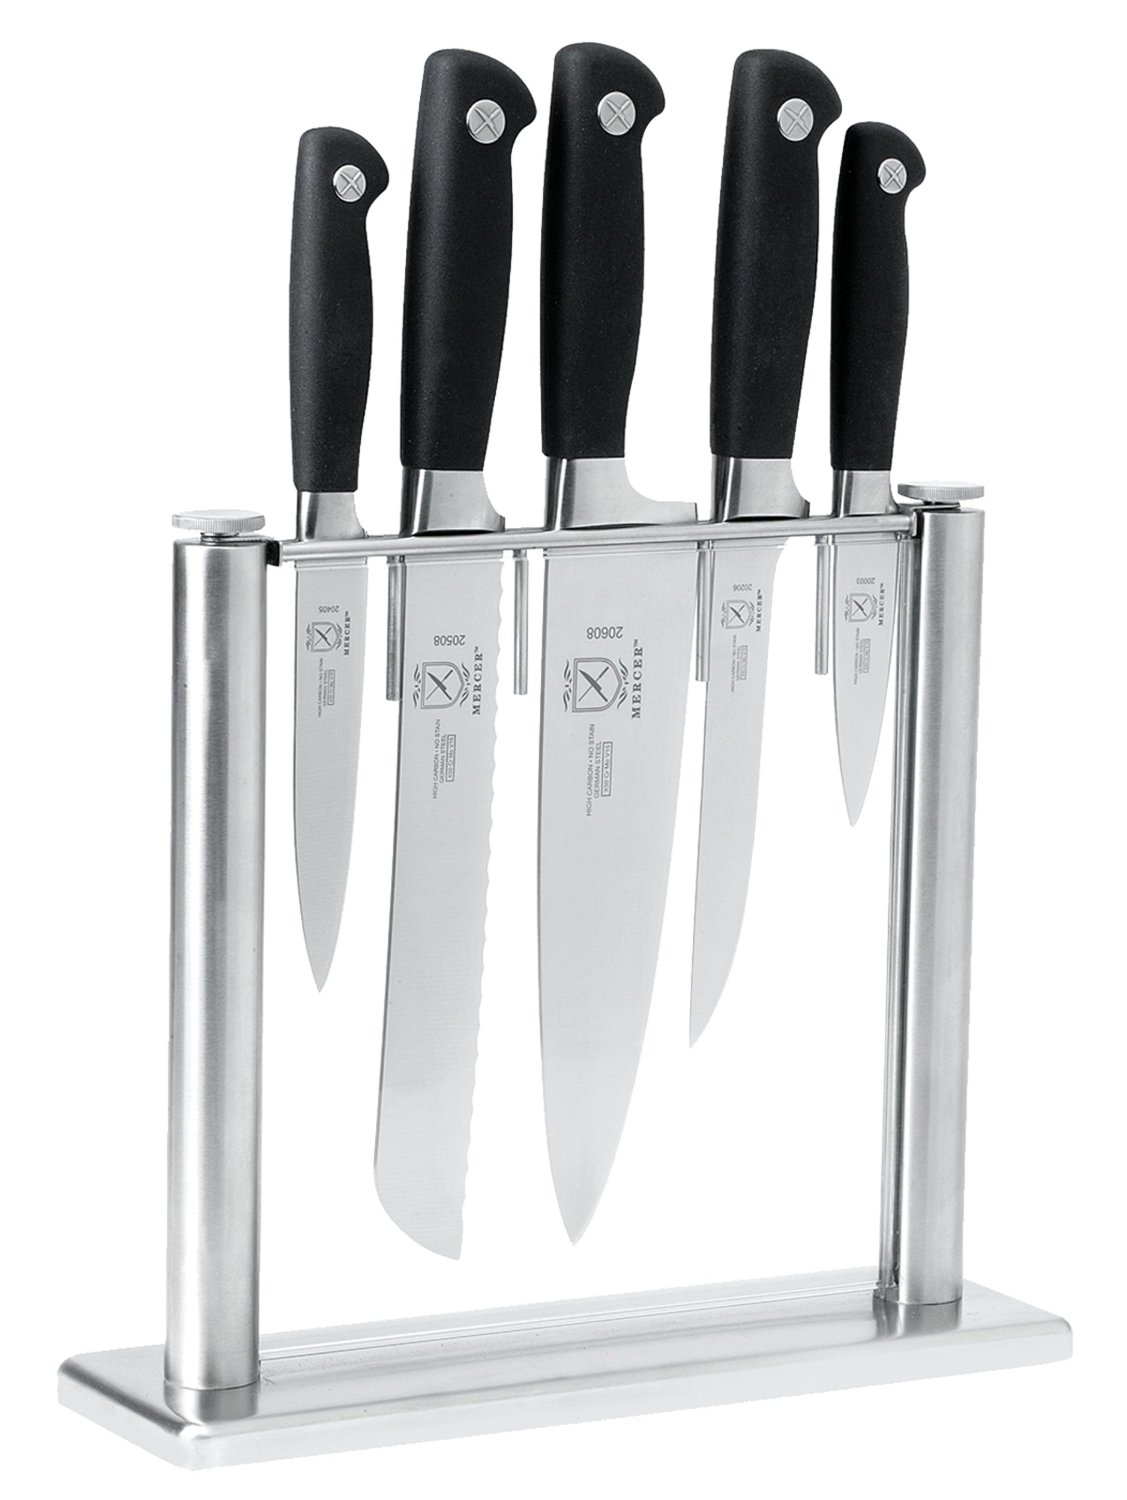 Choosing the Best Knife Set for Your Kitchen